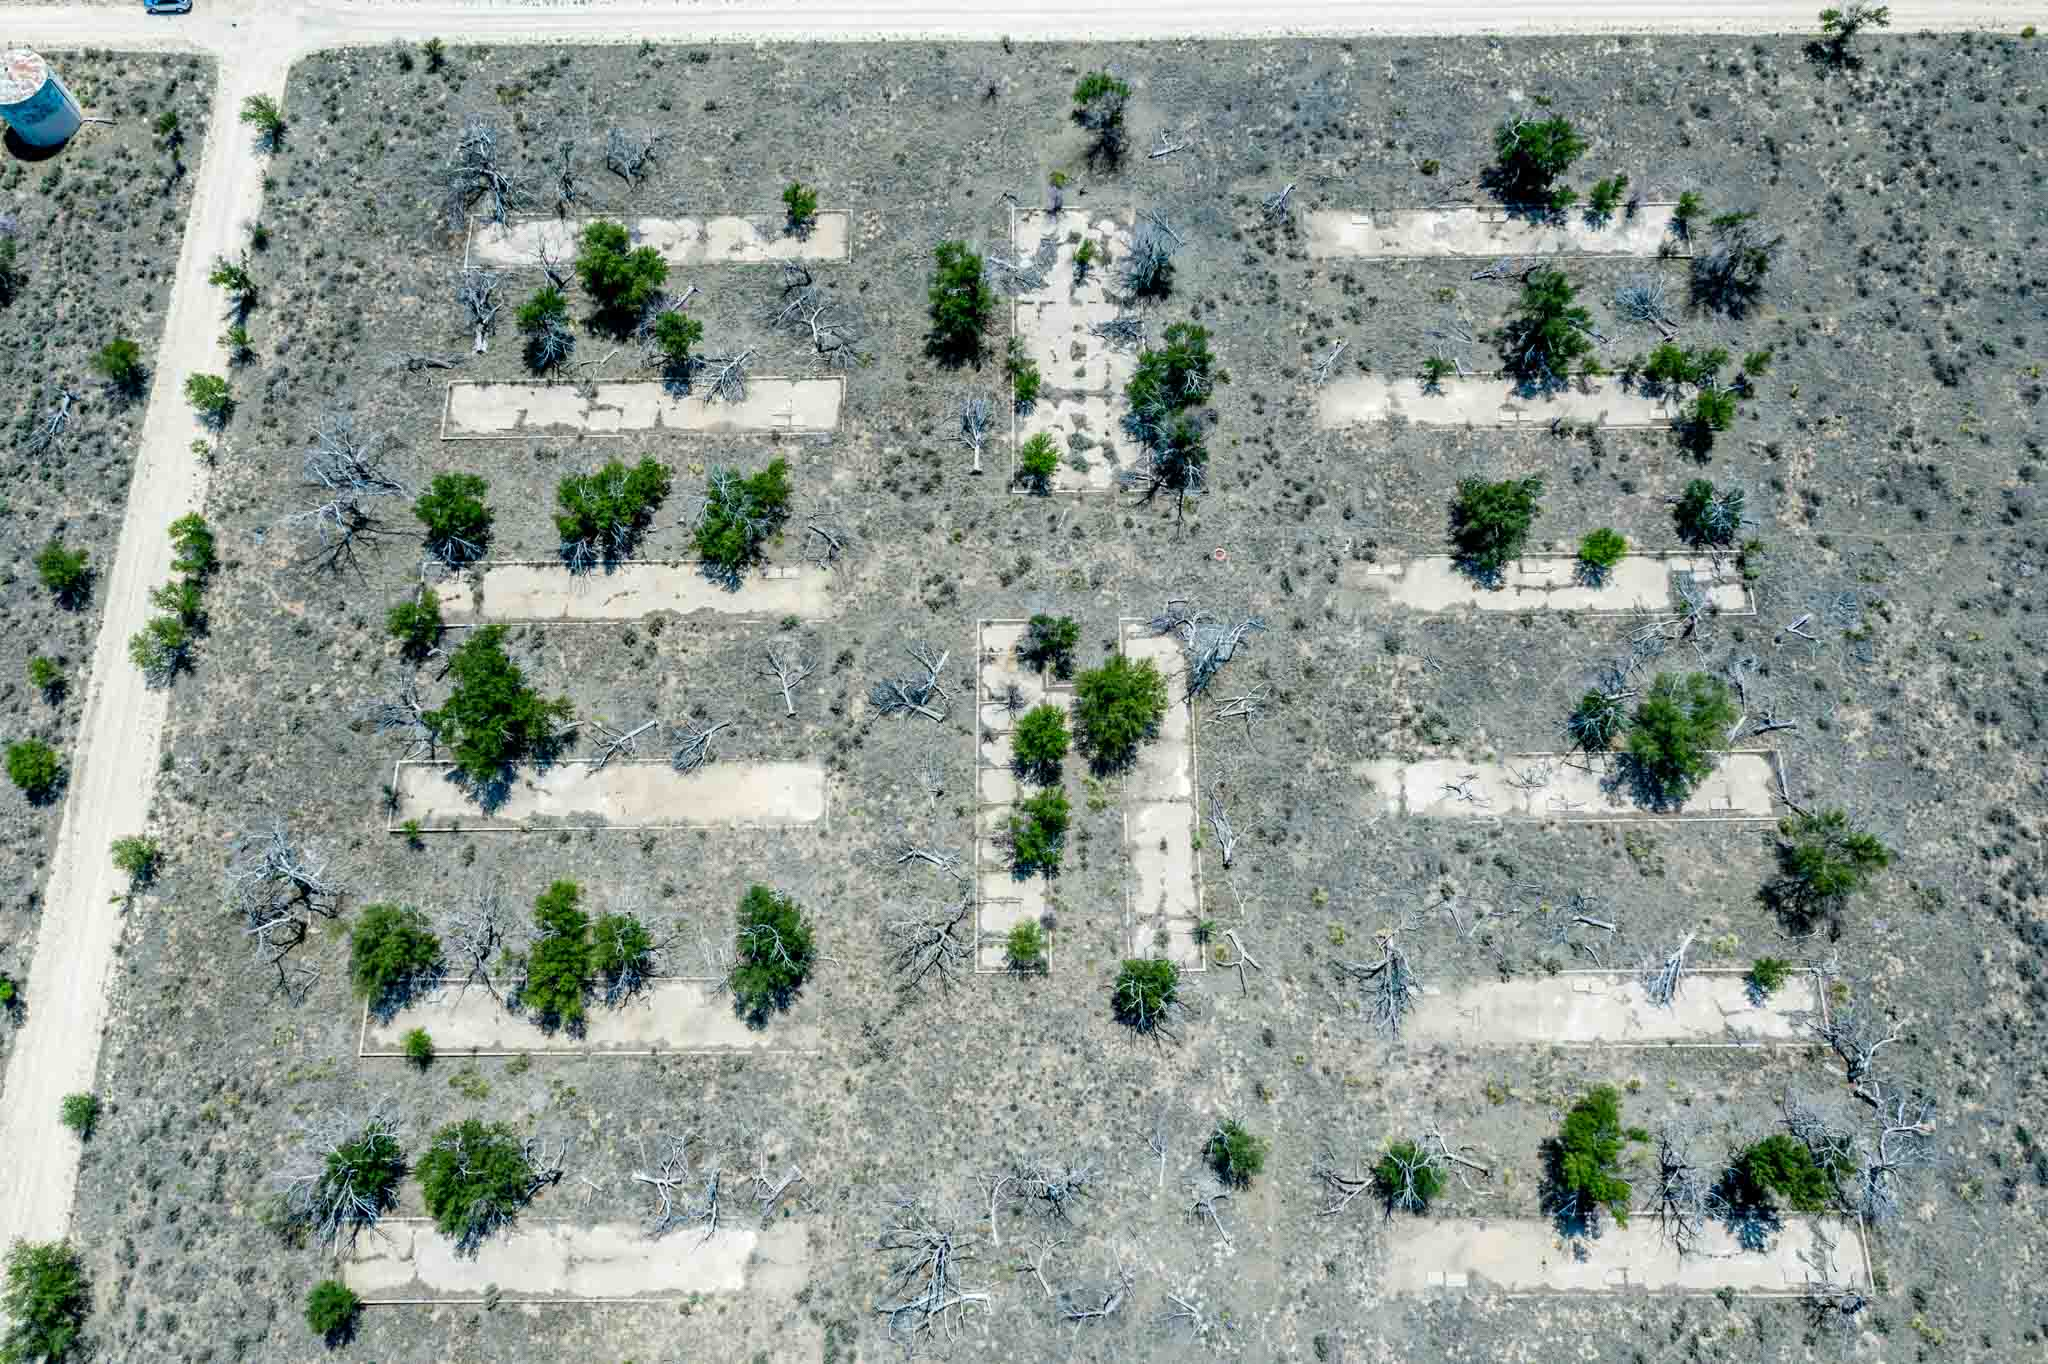 Aerial view of barrack building footprints at Camp Amache, the Granada Relocation Center in Colorado